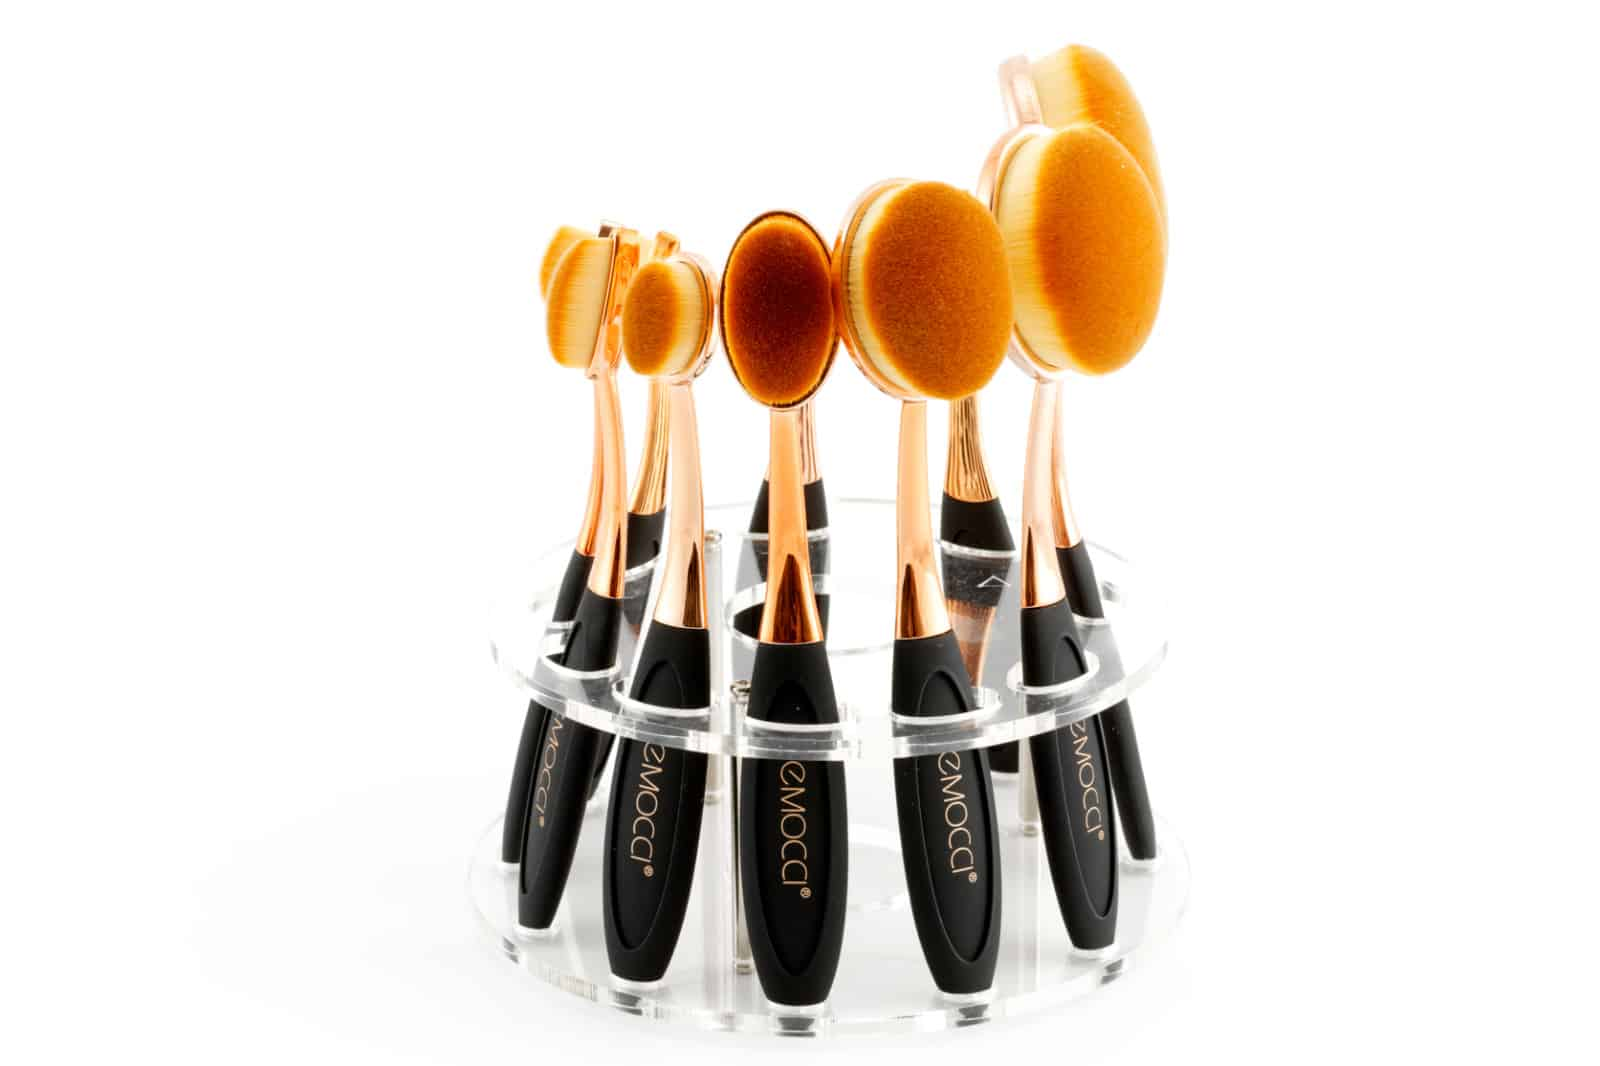 Rose Gold Spoon Brush Carousel